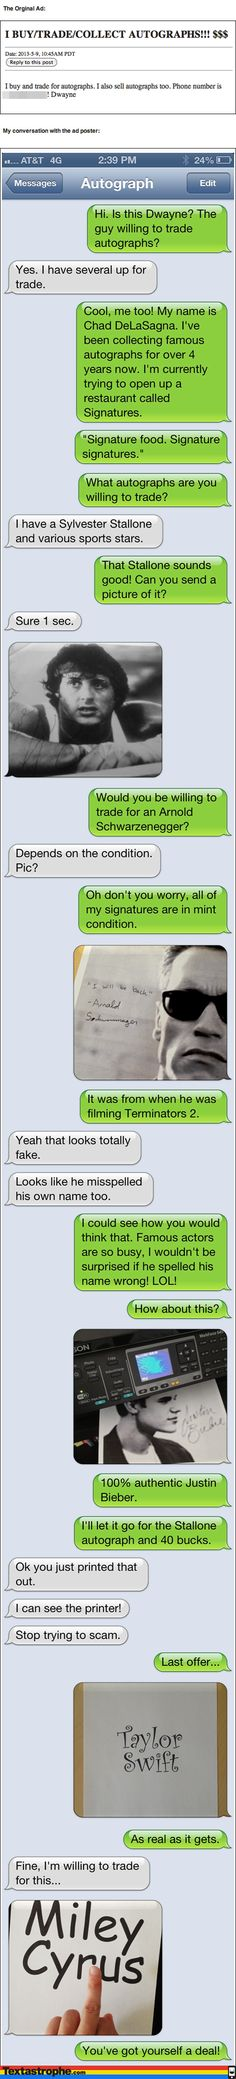 Textastrophe: Trolling via text messages http://dly.do/112CT4Q